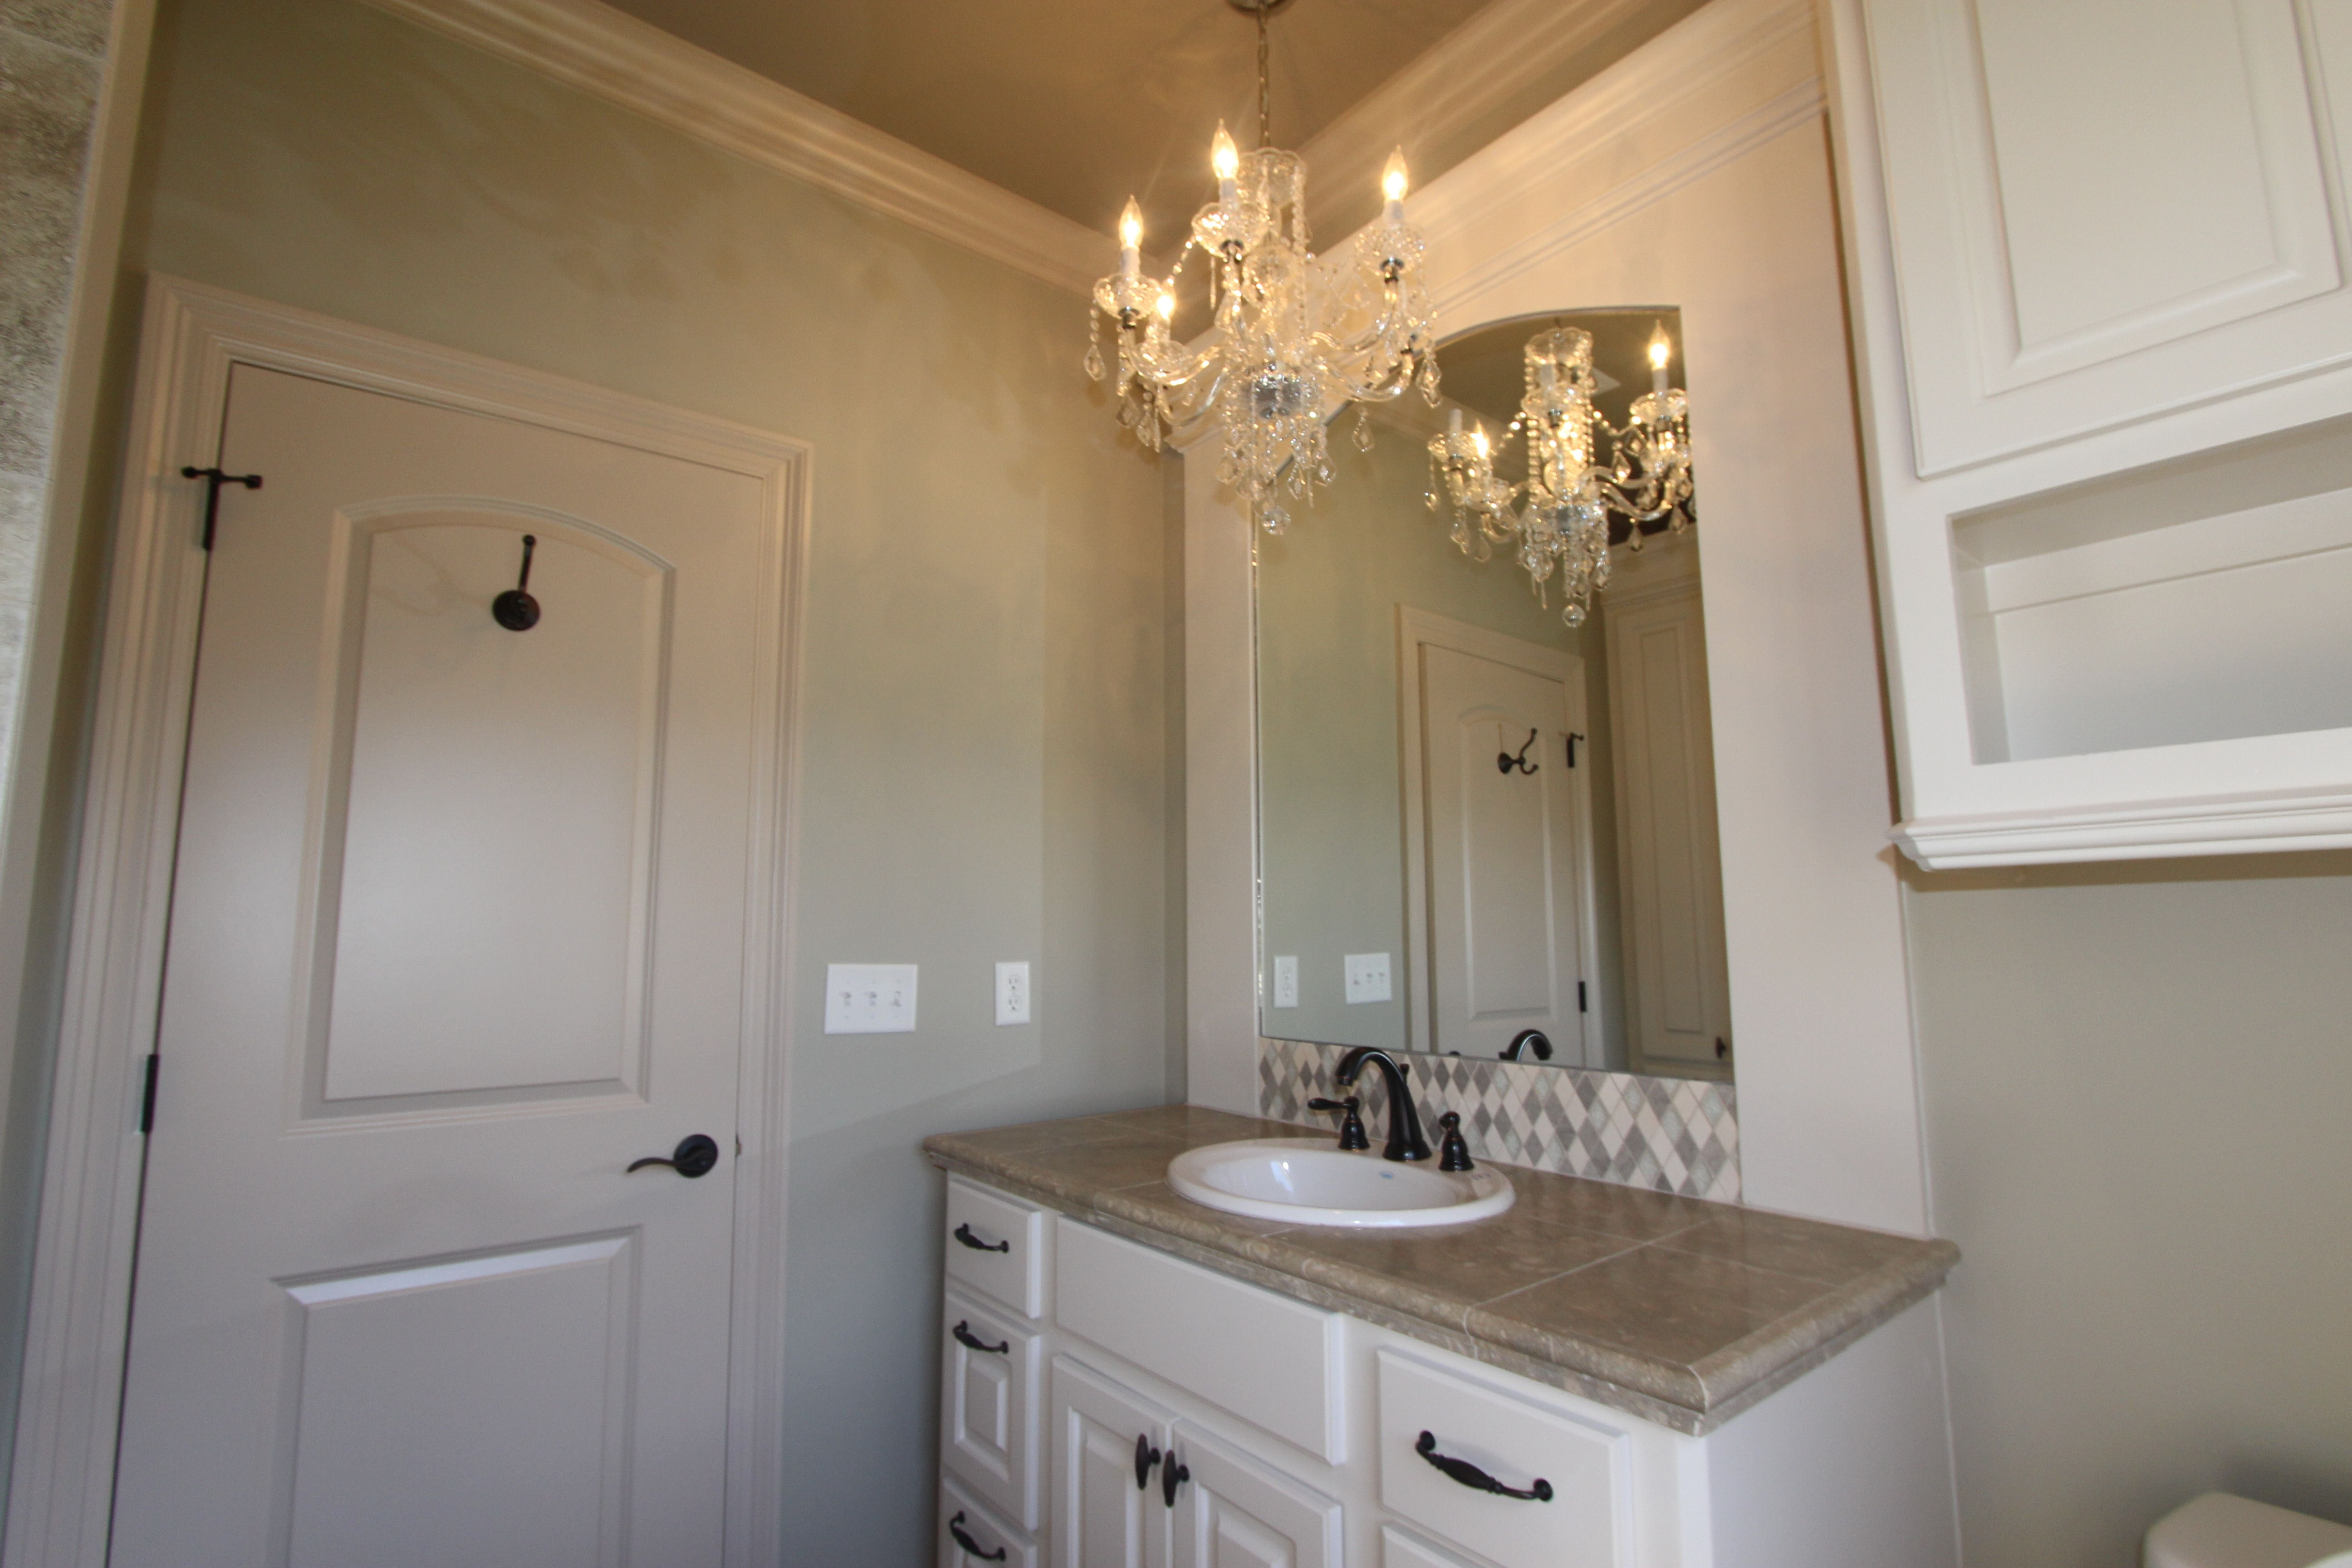 Elegant guest bath with custom vanity, custom tile detail, and chandelier.